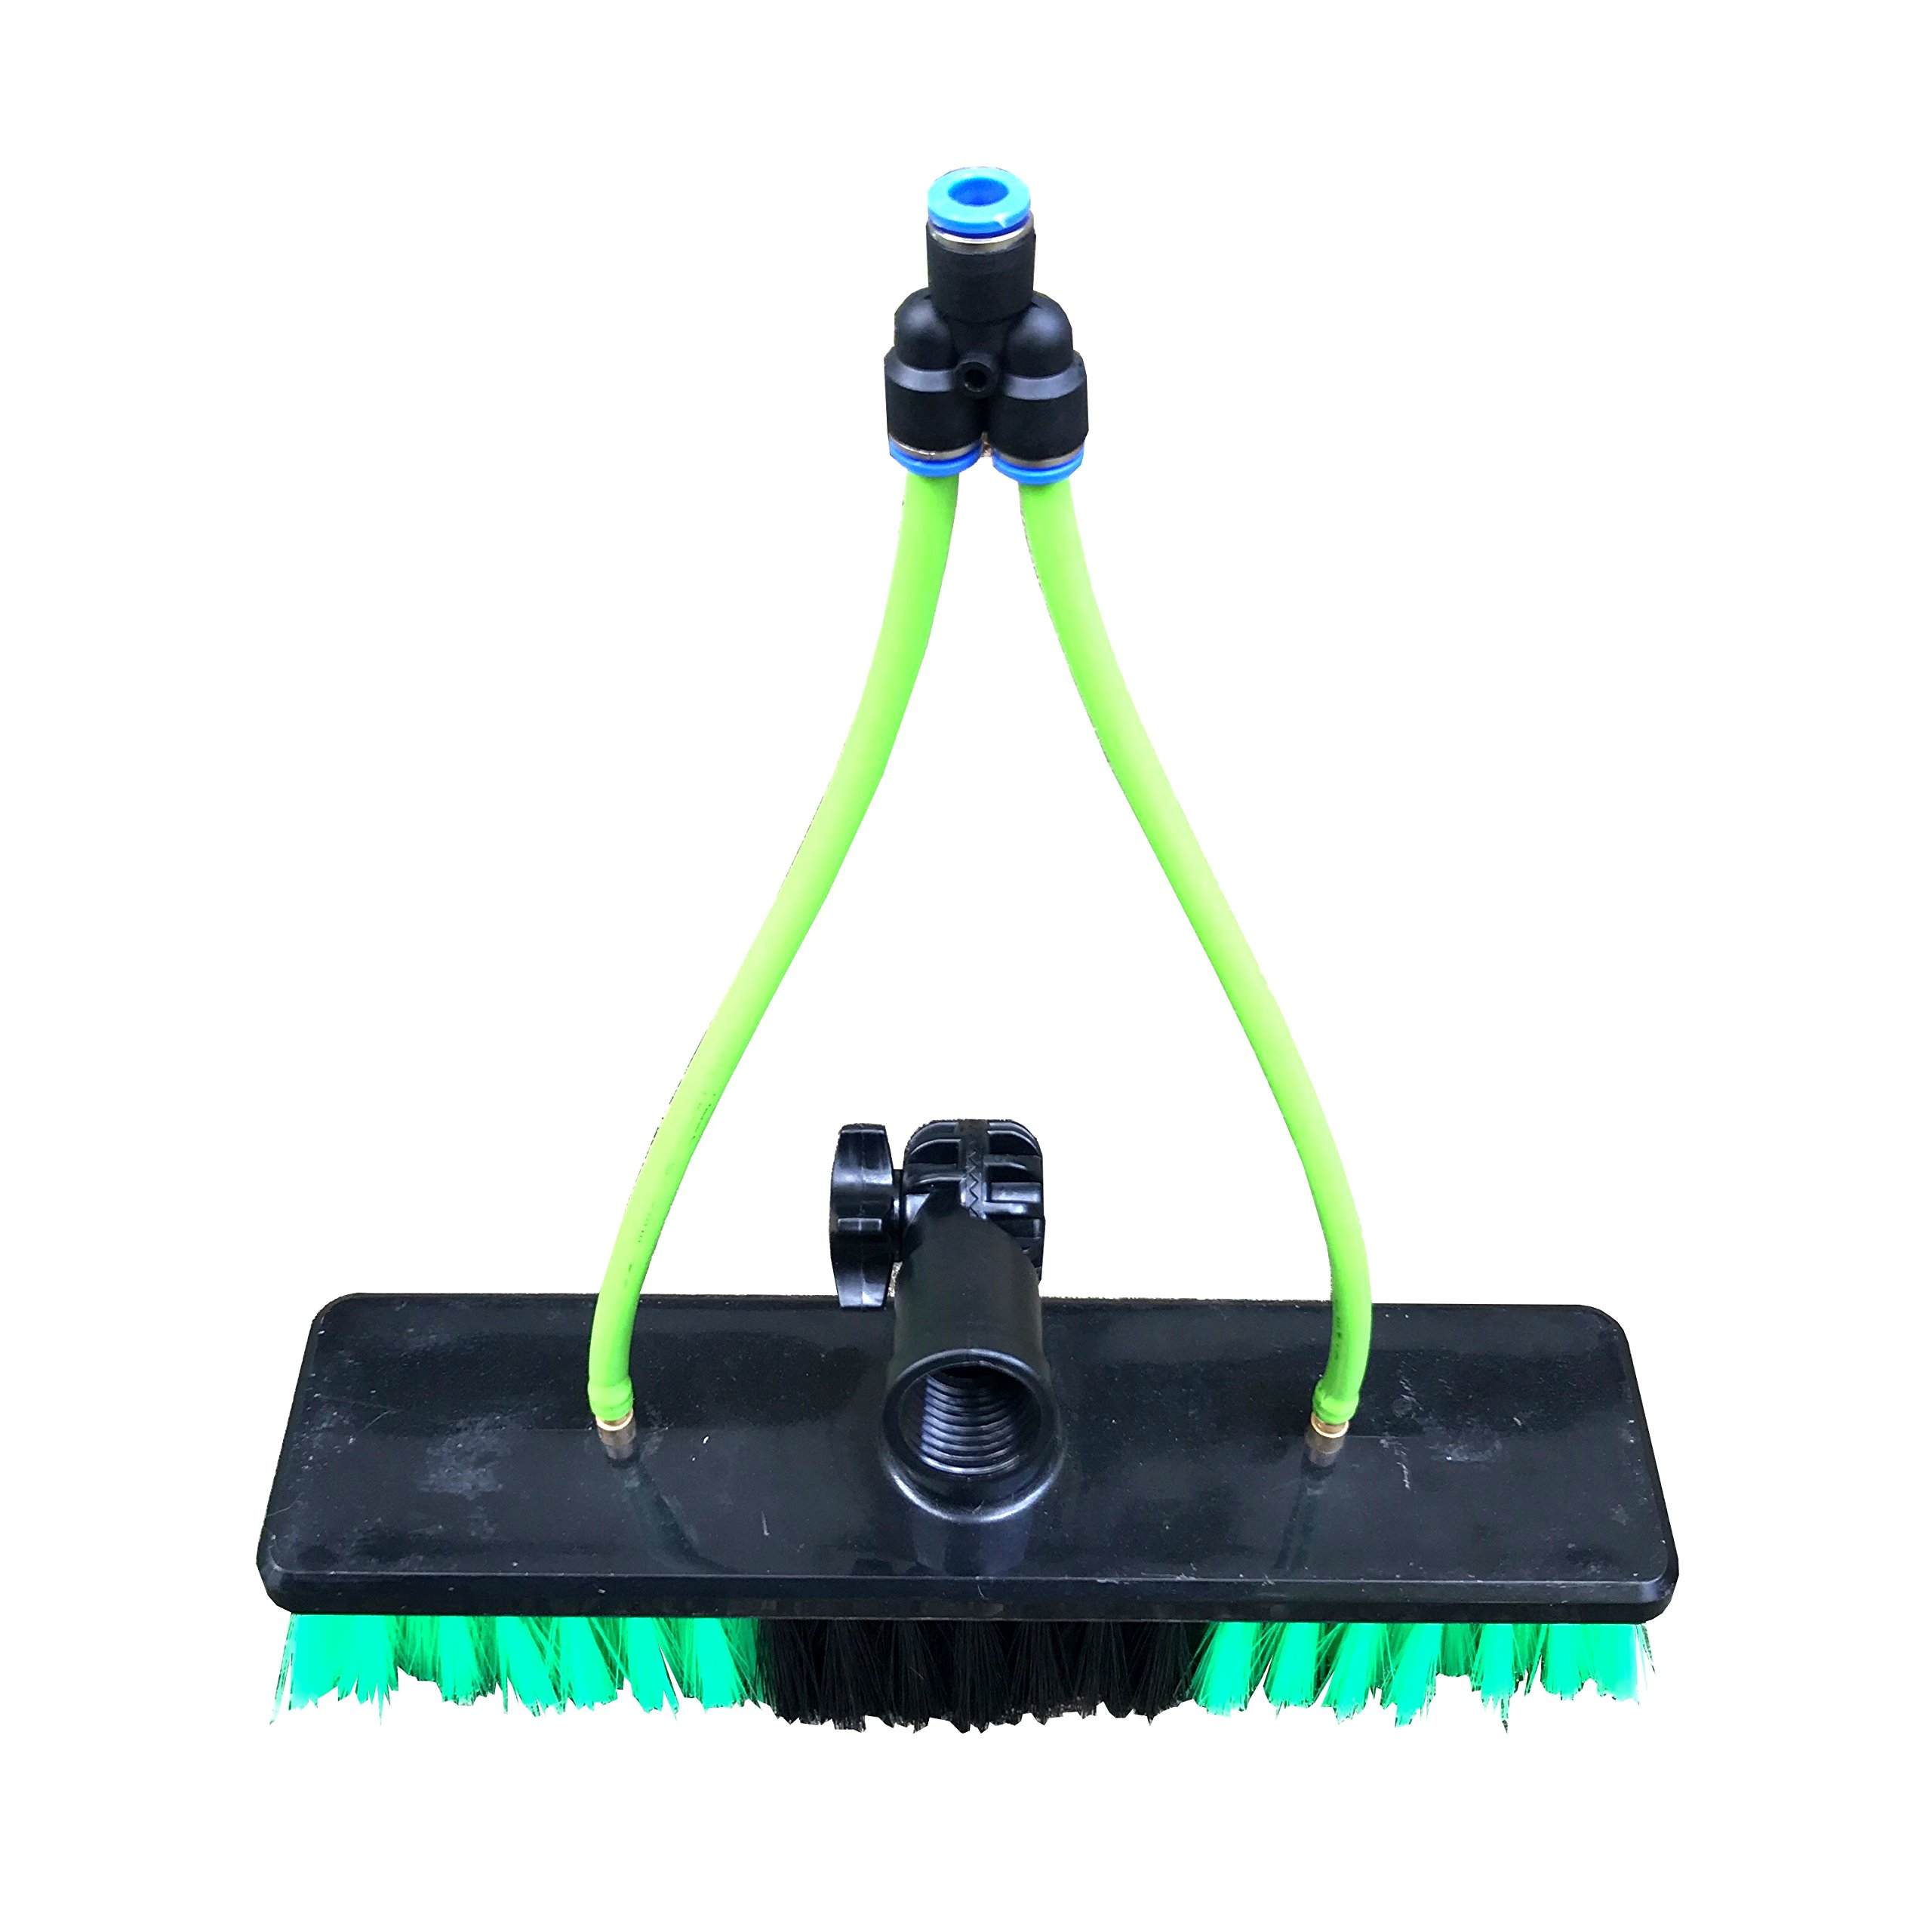 30 ft Water Fed Pole, Window & Solar Panel Cleaning Tool with Brush & Squeegee AquaSpray by EquipMaxx by EquipMaxx AquaSpray (Image #9)